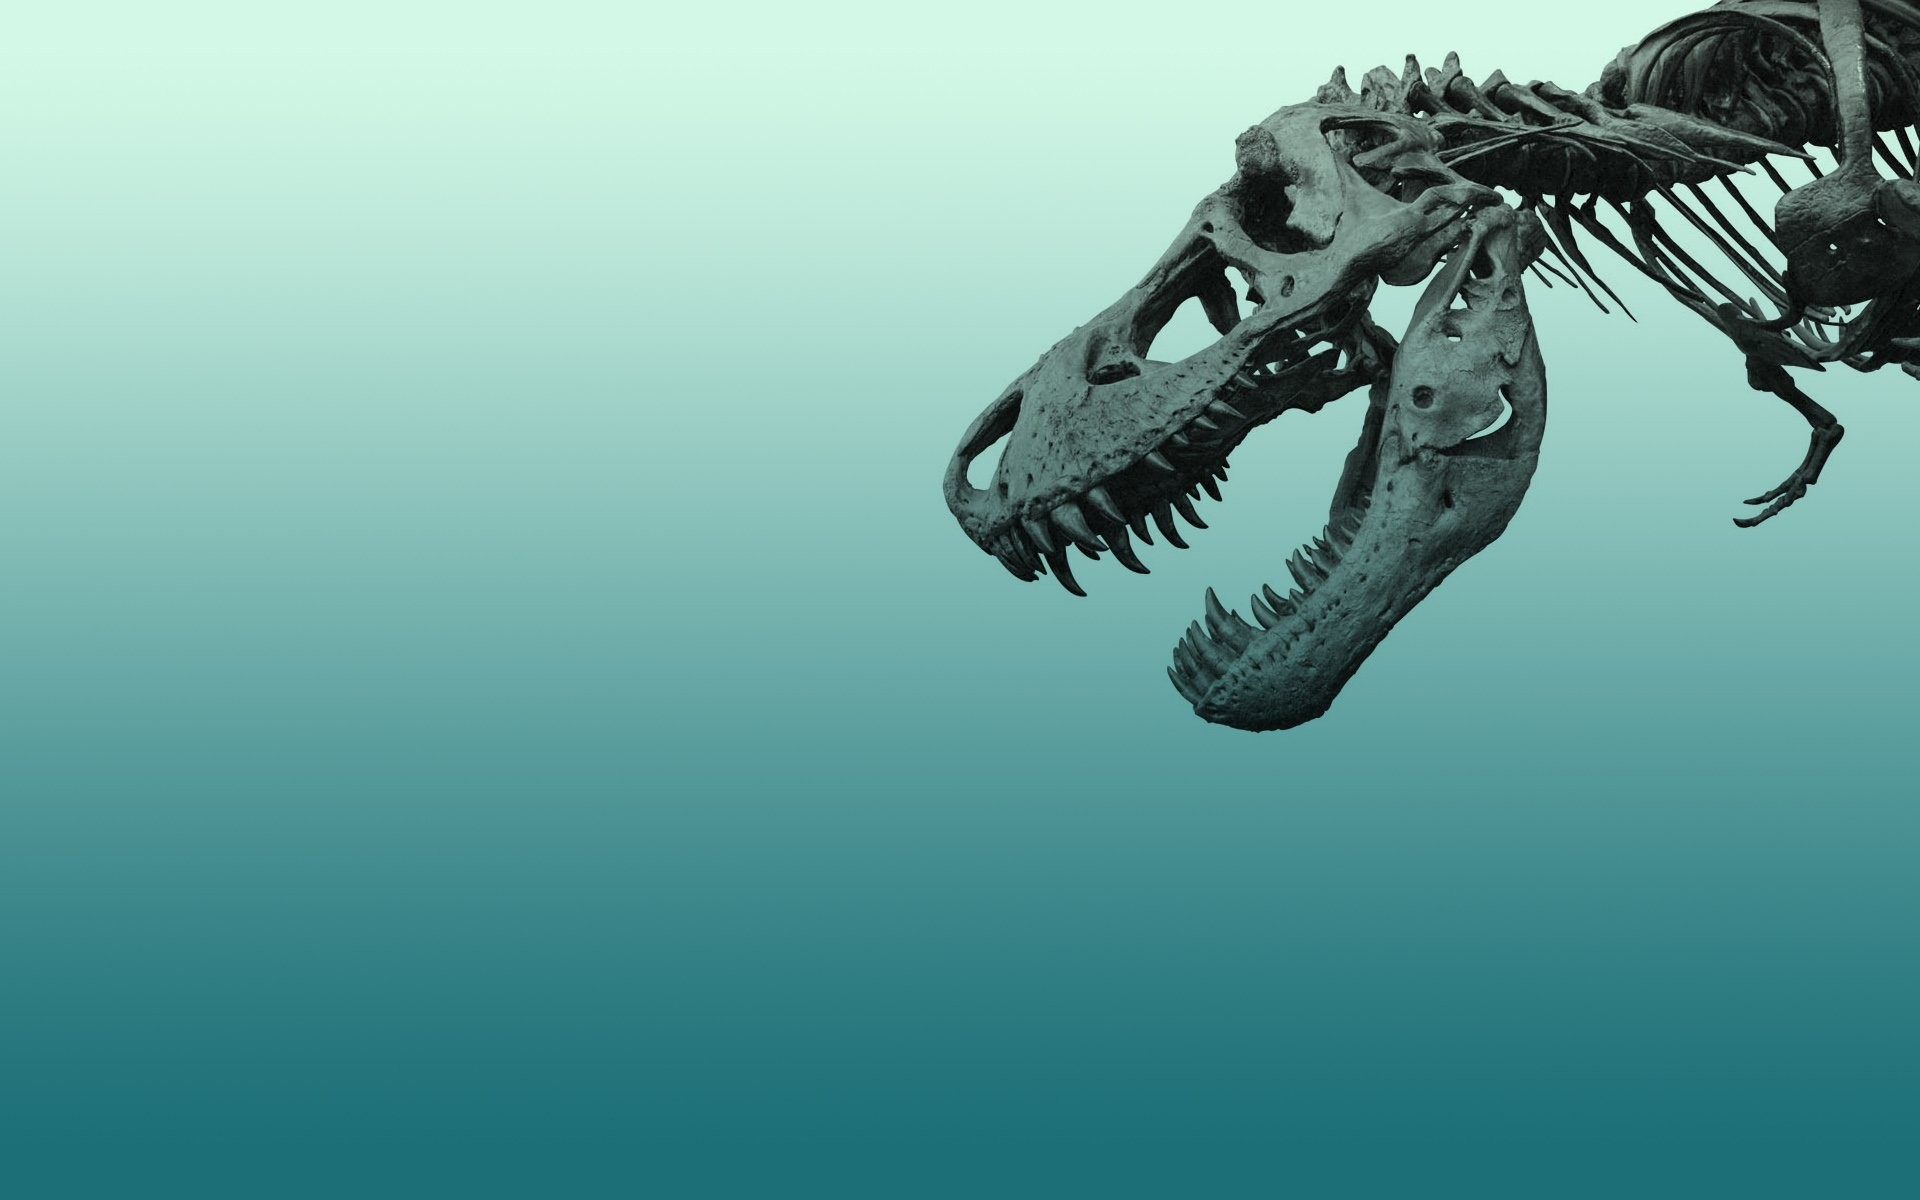 Dinosaur wallpaper ·① Download free awesome High ...